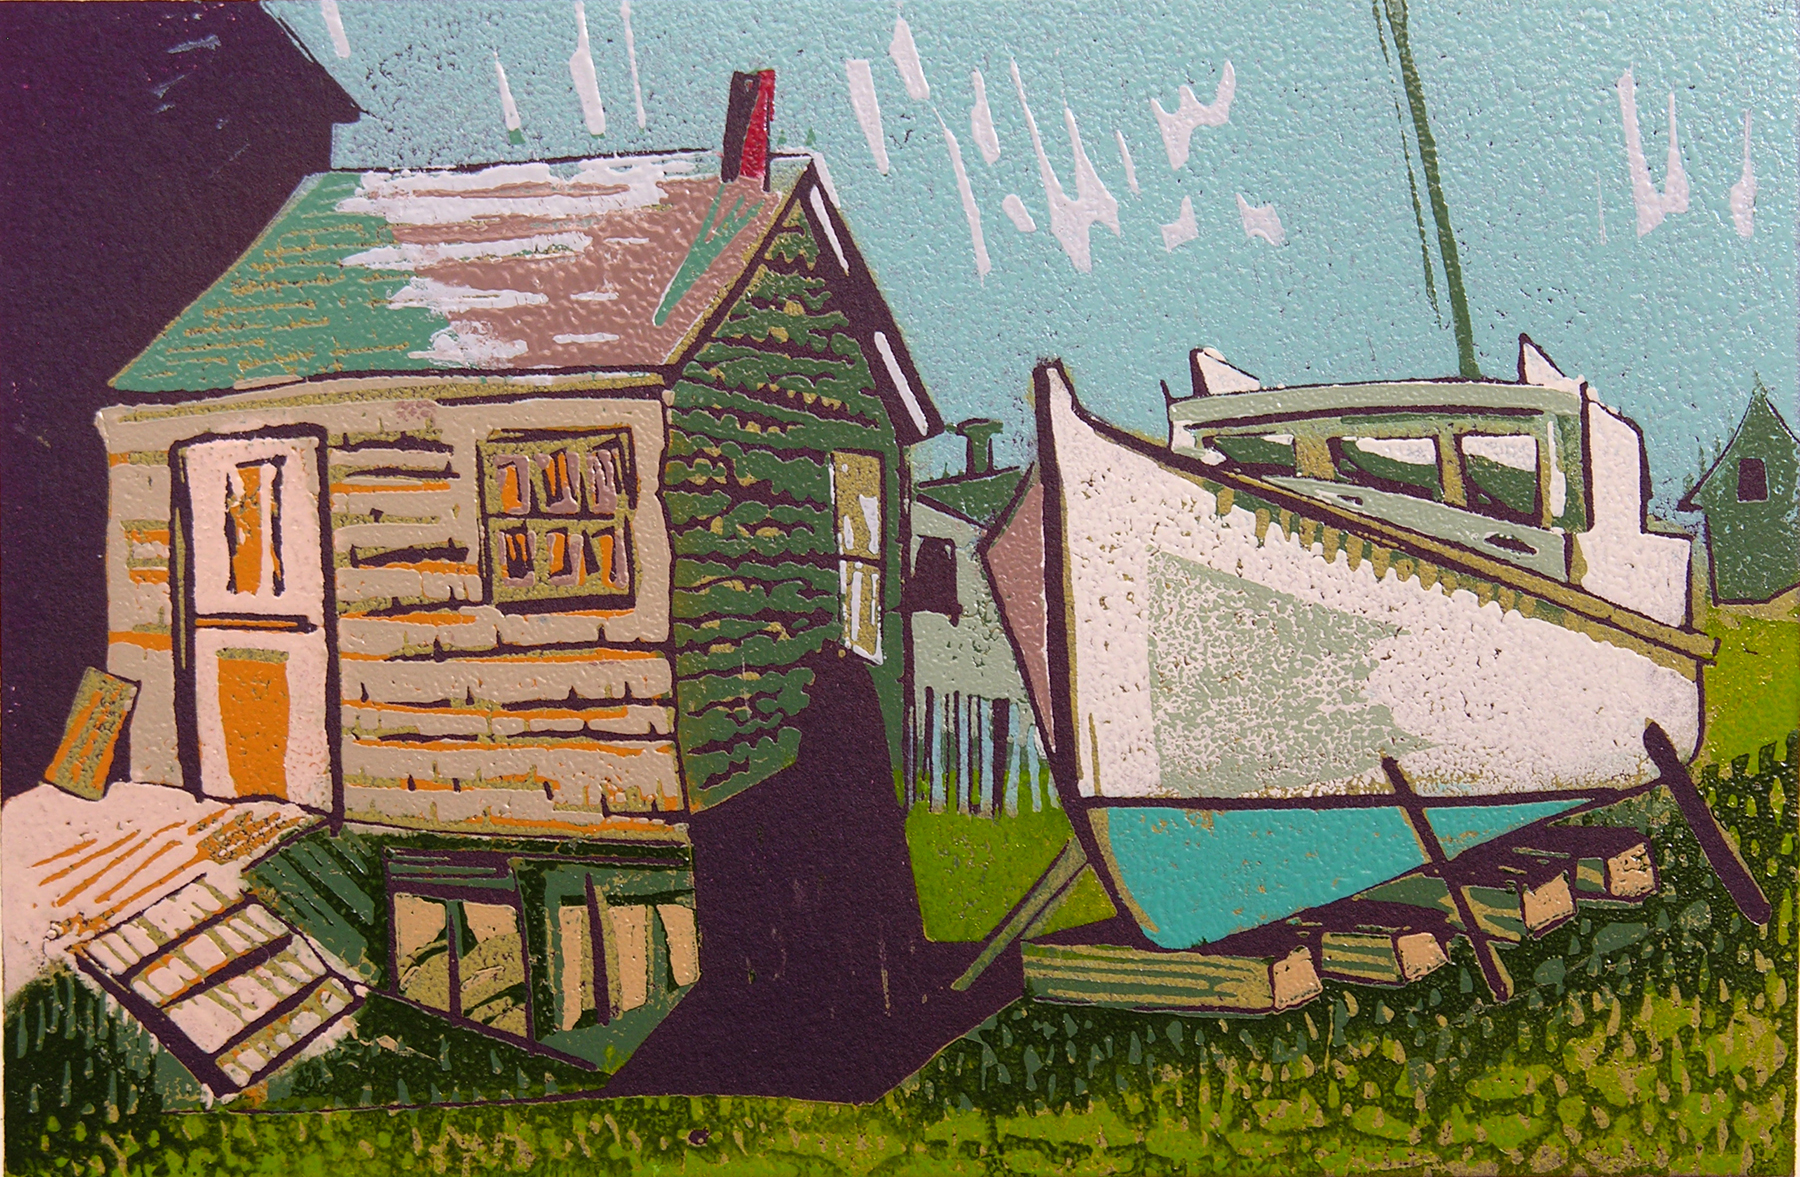 "Neighbors (8/9) , reduction linoleum print on paper, 9"" x 11"", $300"